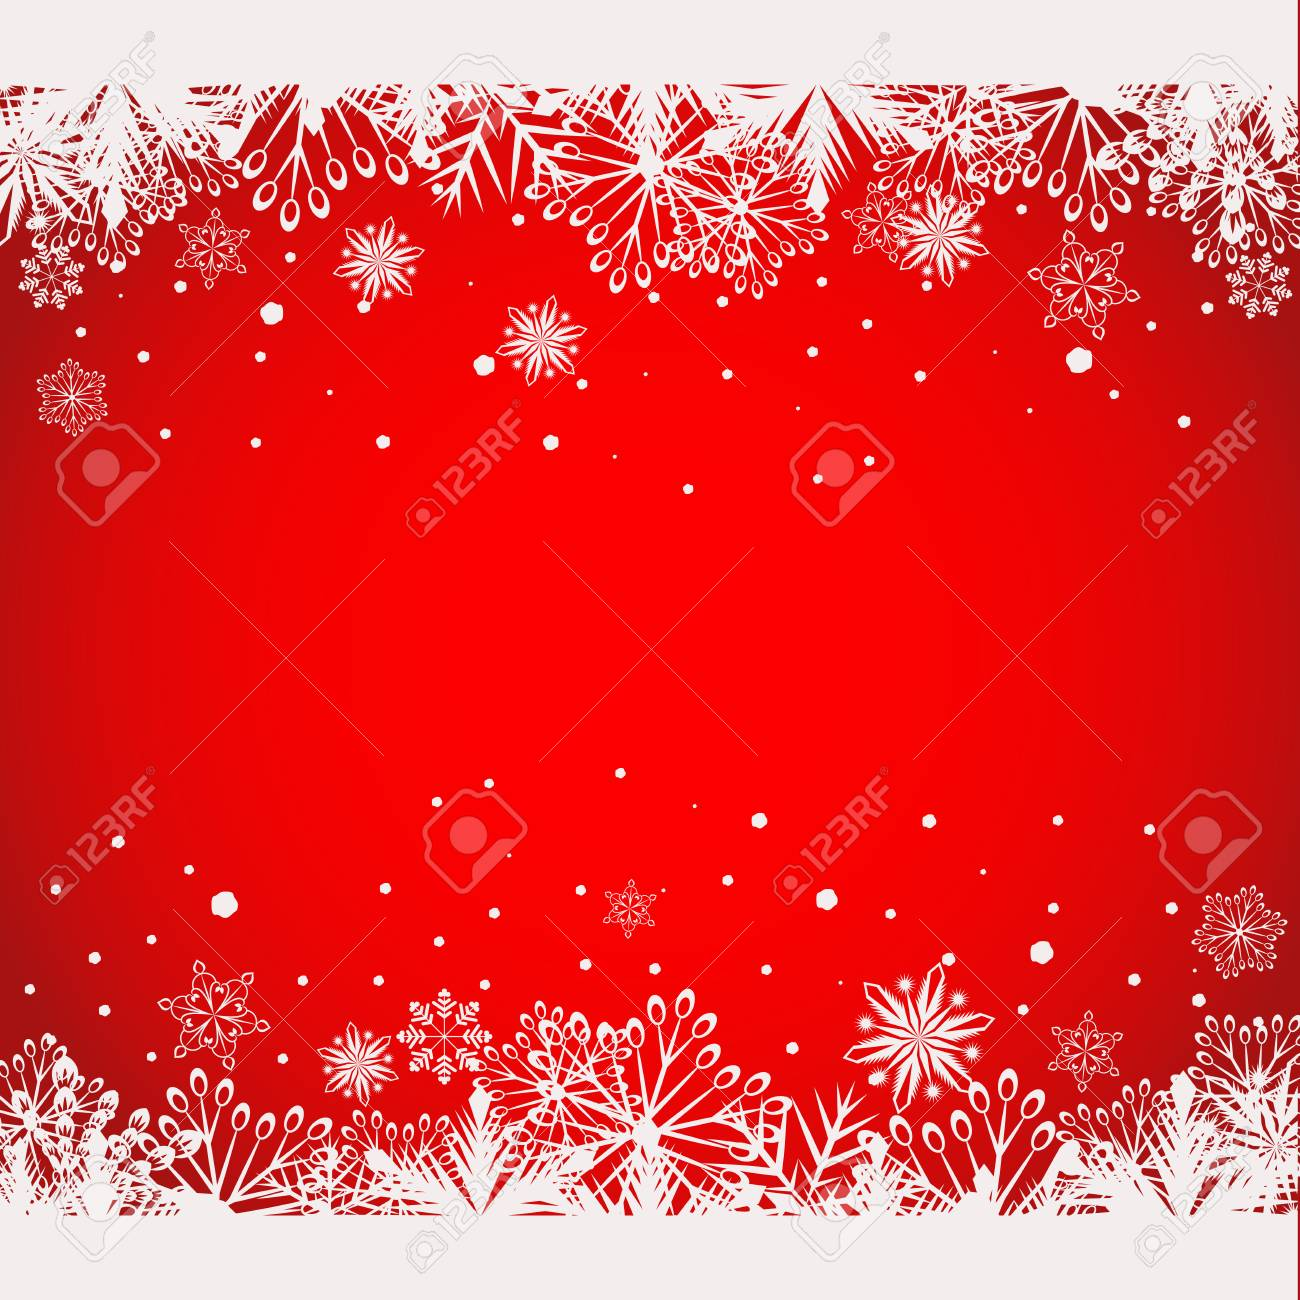 abstract red christmas background with white snowflake borders